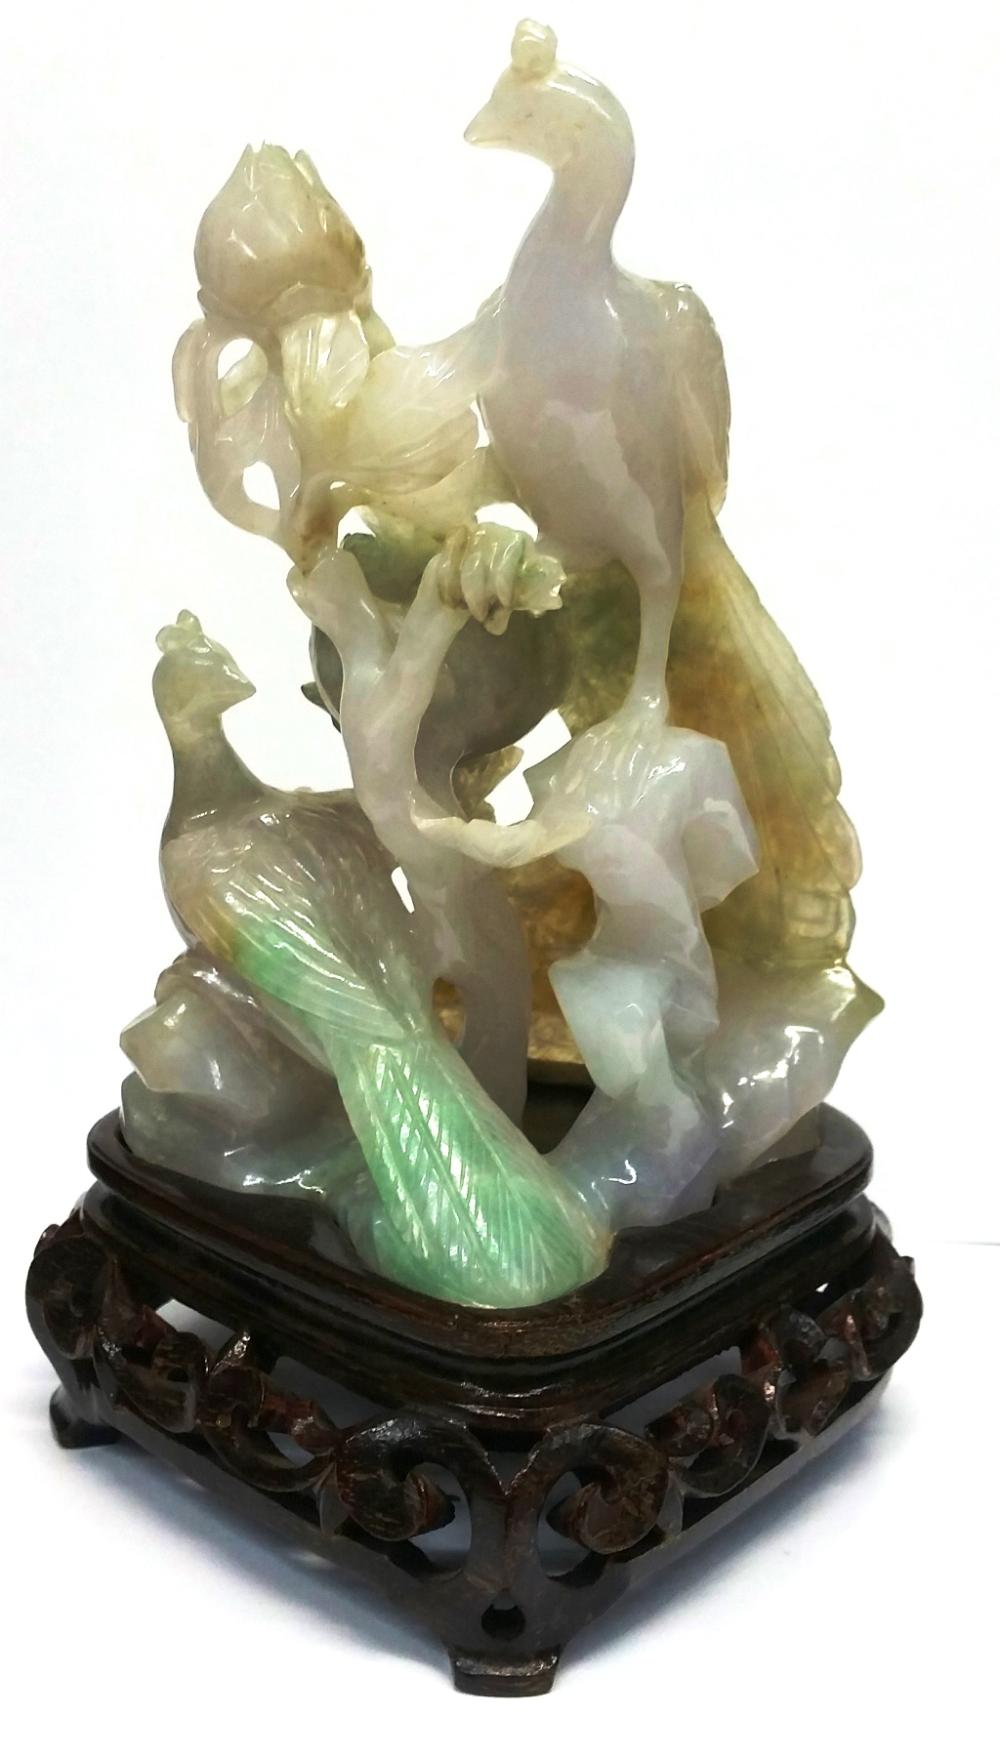 Antique Chinese White Jadeite Jade With Orange Dark Apple Green Moss In Snow Veins Peacock Peahen Carved Statue Sculpture 5in Kassias NYC Provenance